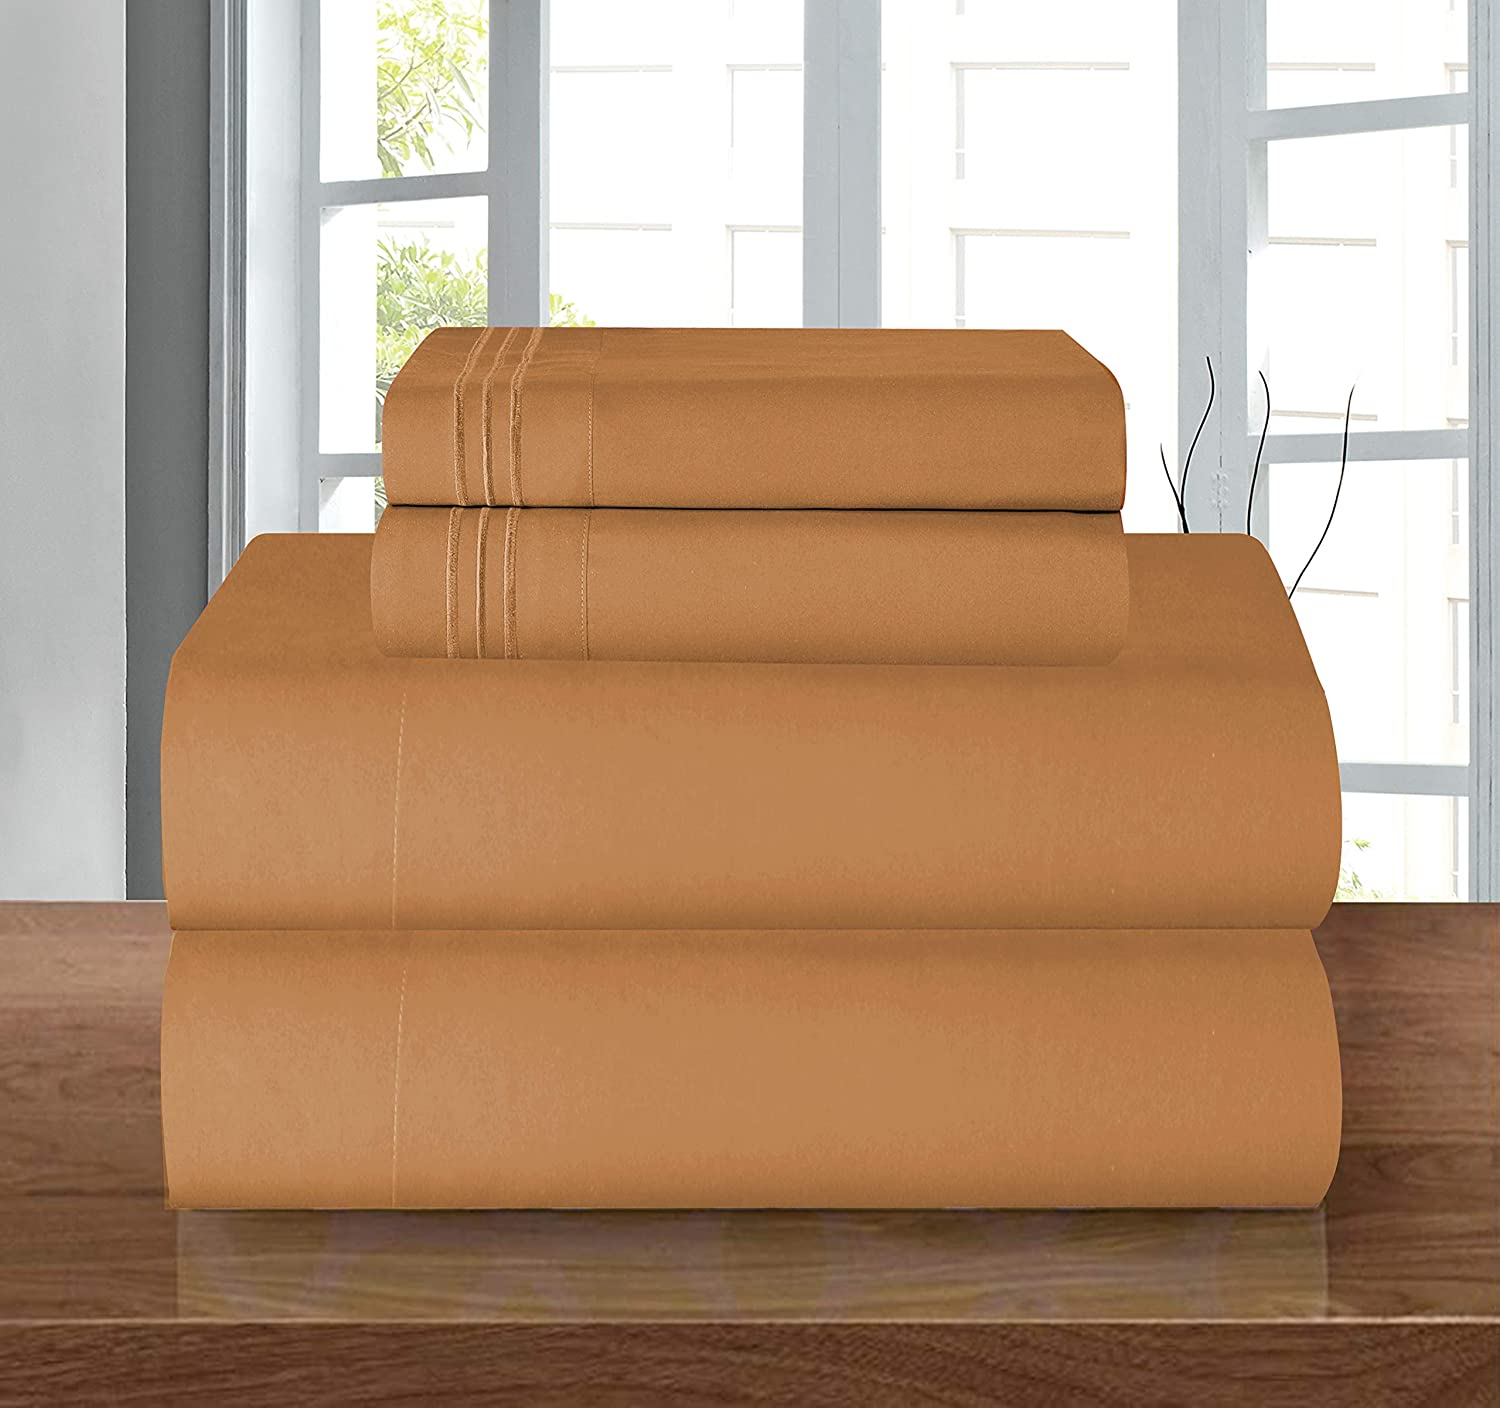 "1500 Series ULTRA SILKY SOFT LUXURY 4 pc Sheet set, Deep Pocket Up to 16"" - Wrinkle Resistant - All Size and Colors , King Bronze"